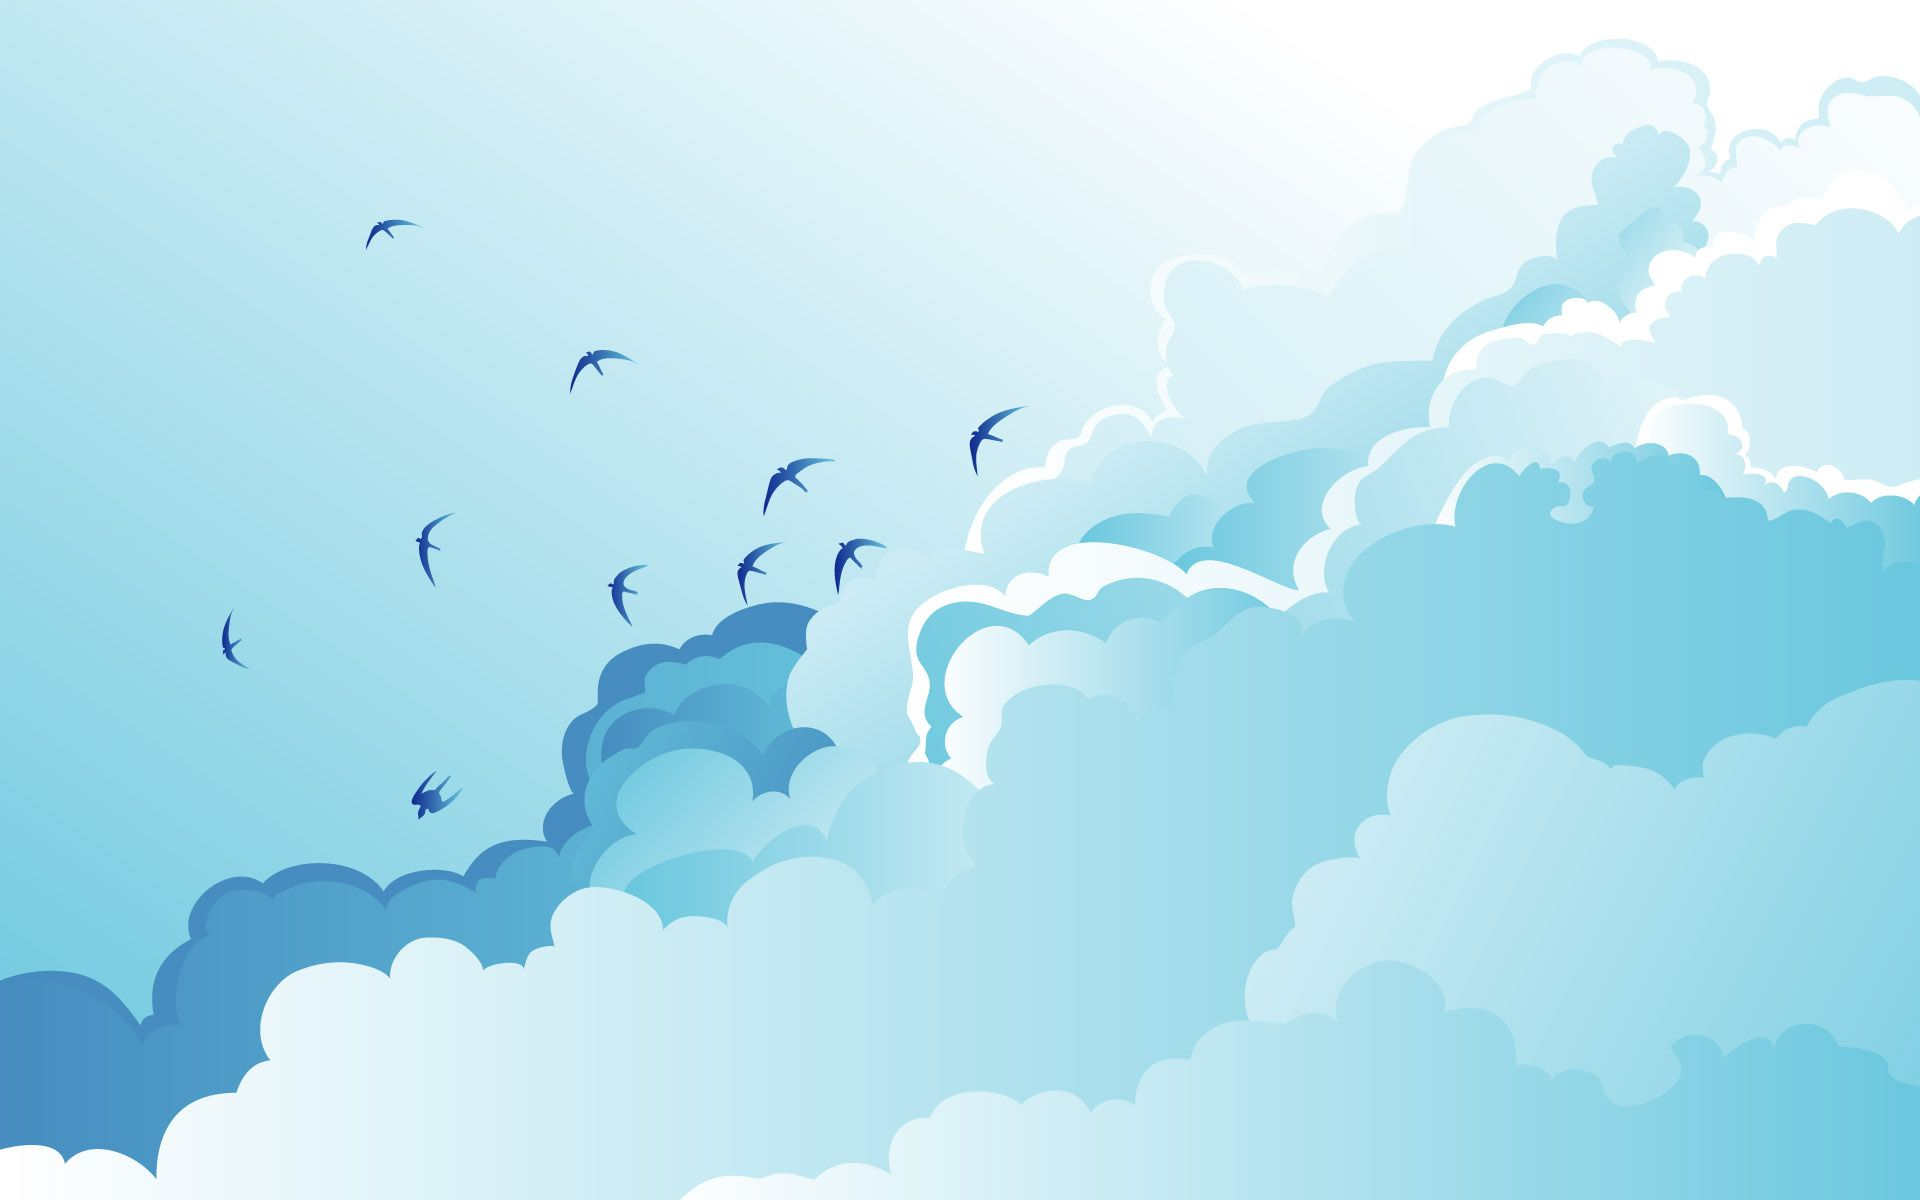 Over The Rainbow Cloudy Sky Wallpaper Blue Holden 90991 Cloud Wallpaper Blue Wallpapers Blue Clouds